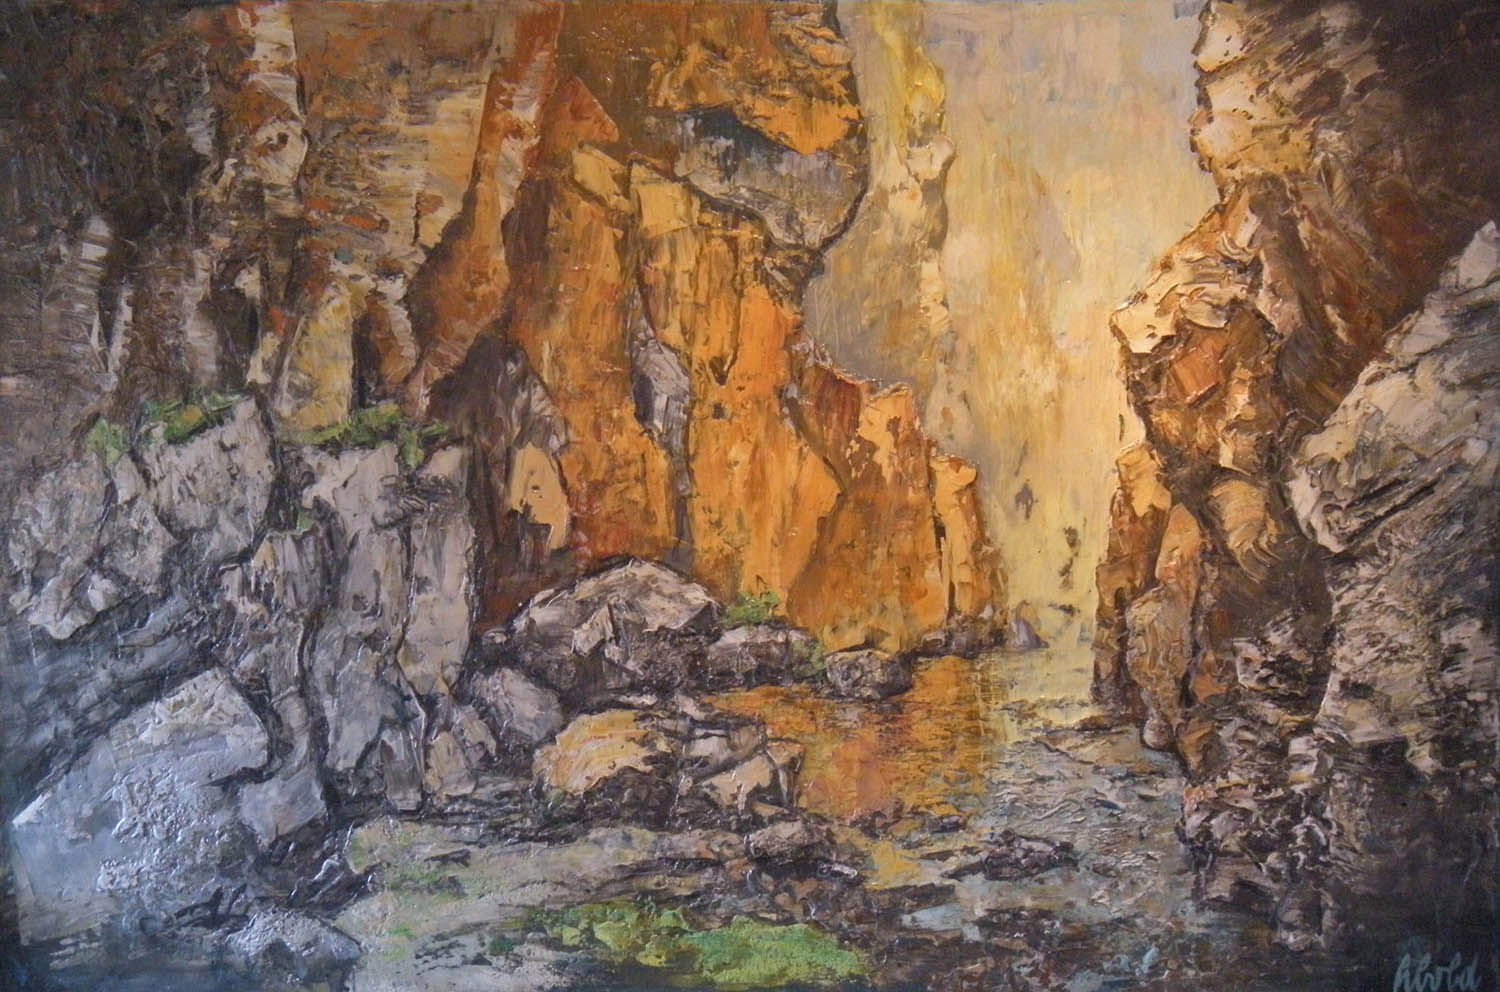 """hans schiebold - """"These are landscapes, but they are very process oriented."""